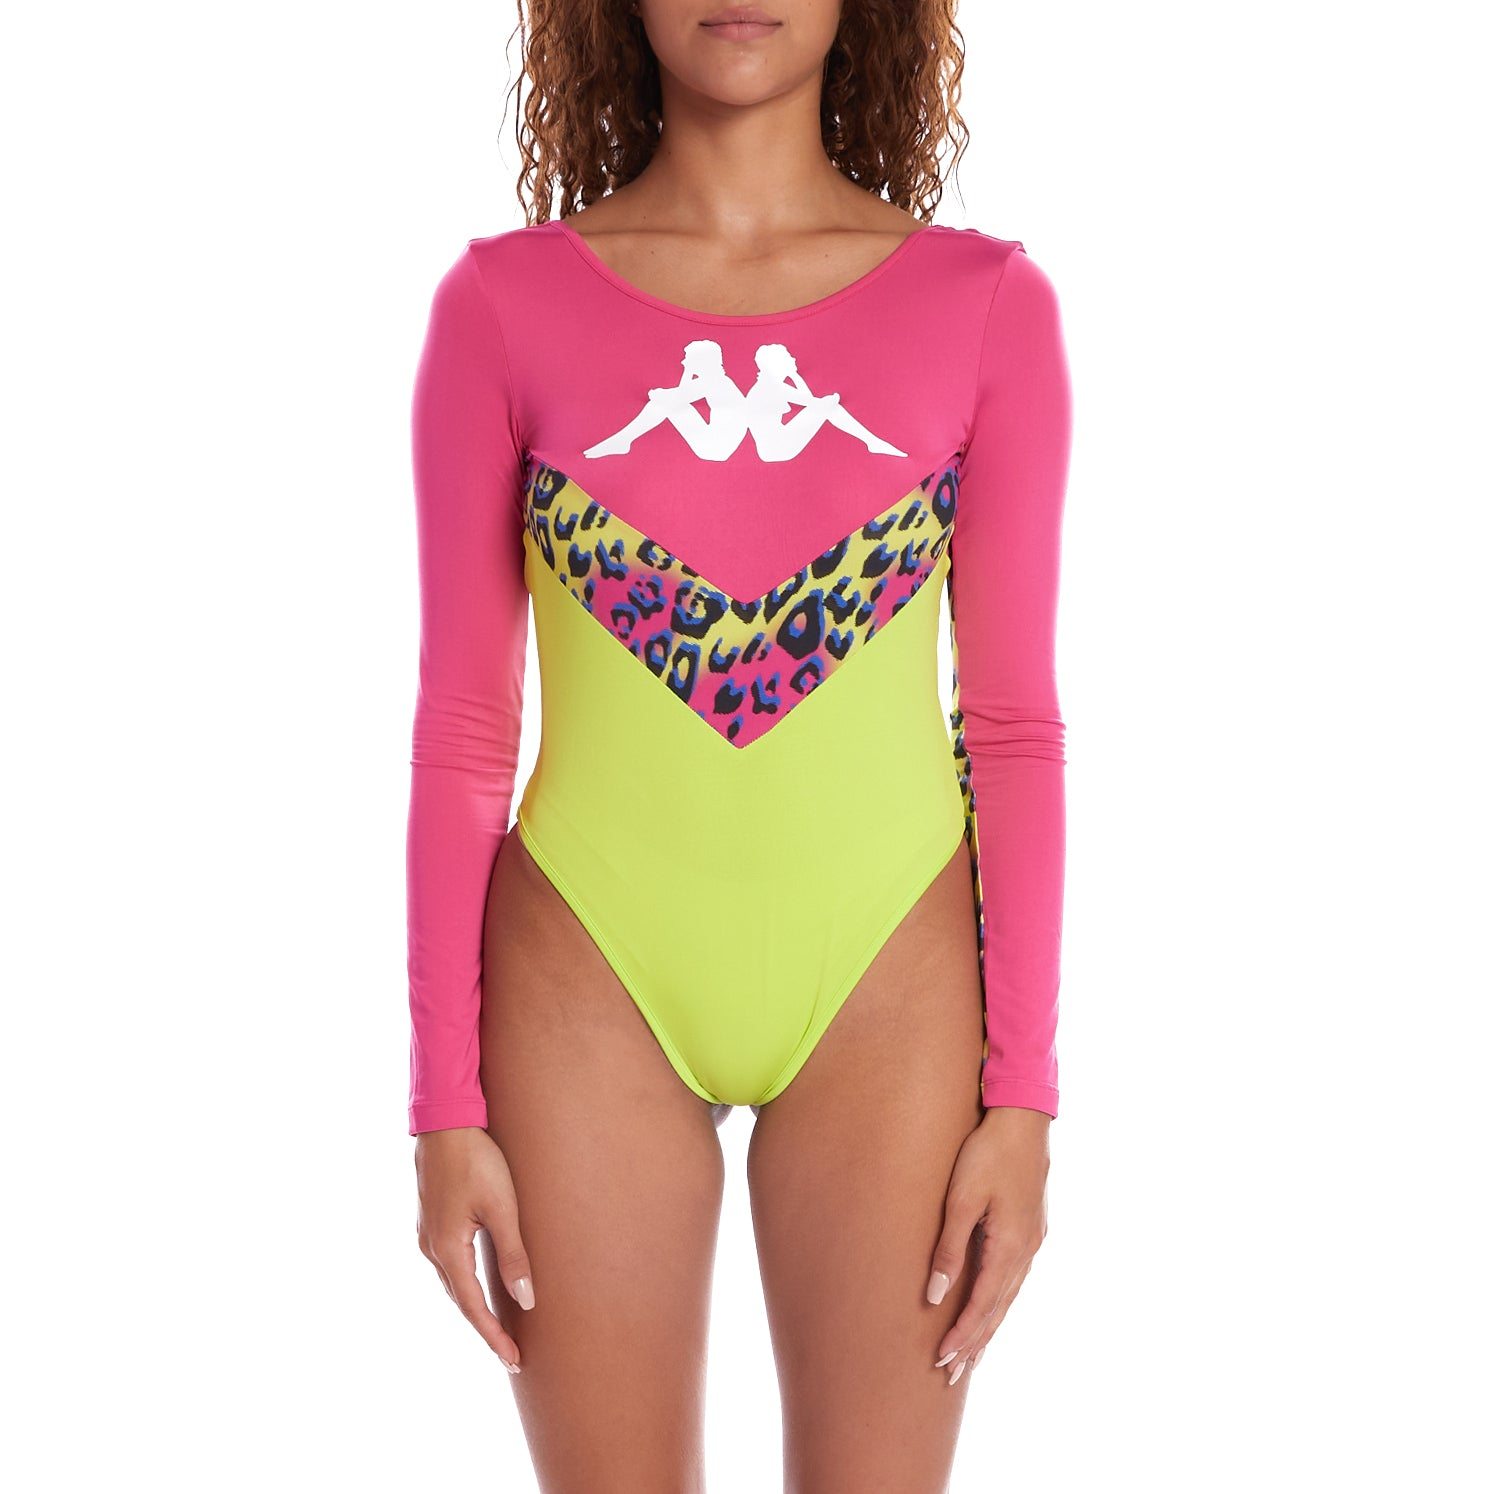 Kappa Authentic Daiana Graphik Bodysuit - Fuchsia Graphic Cheetah